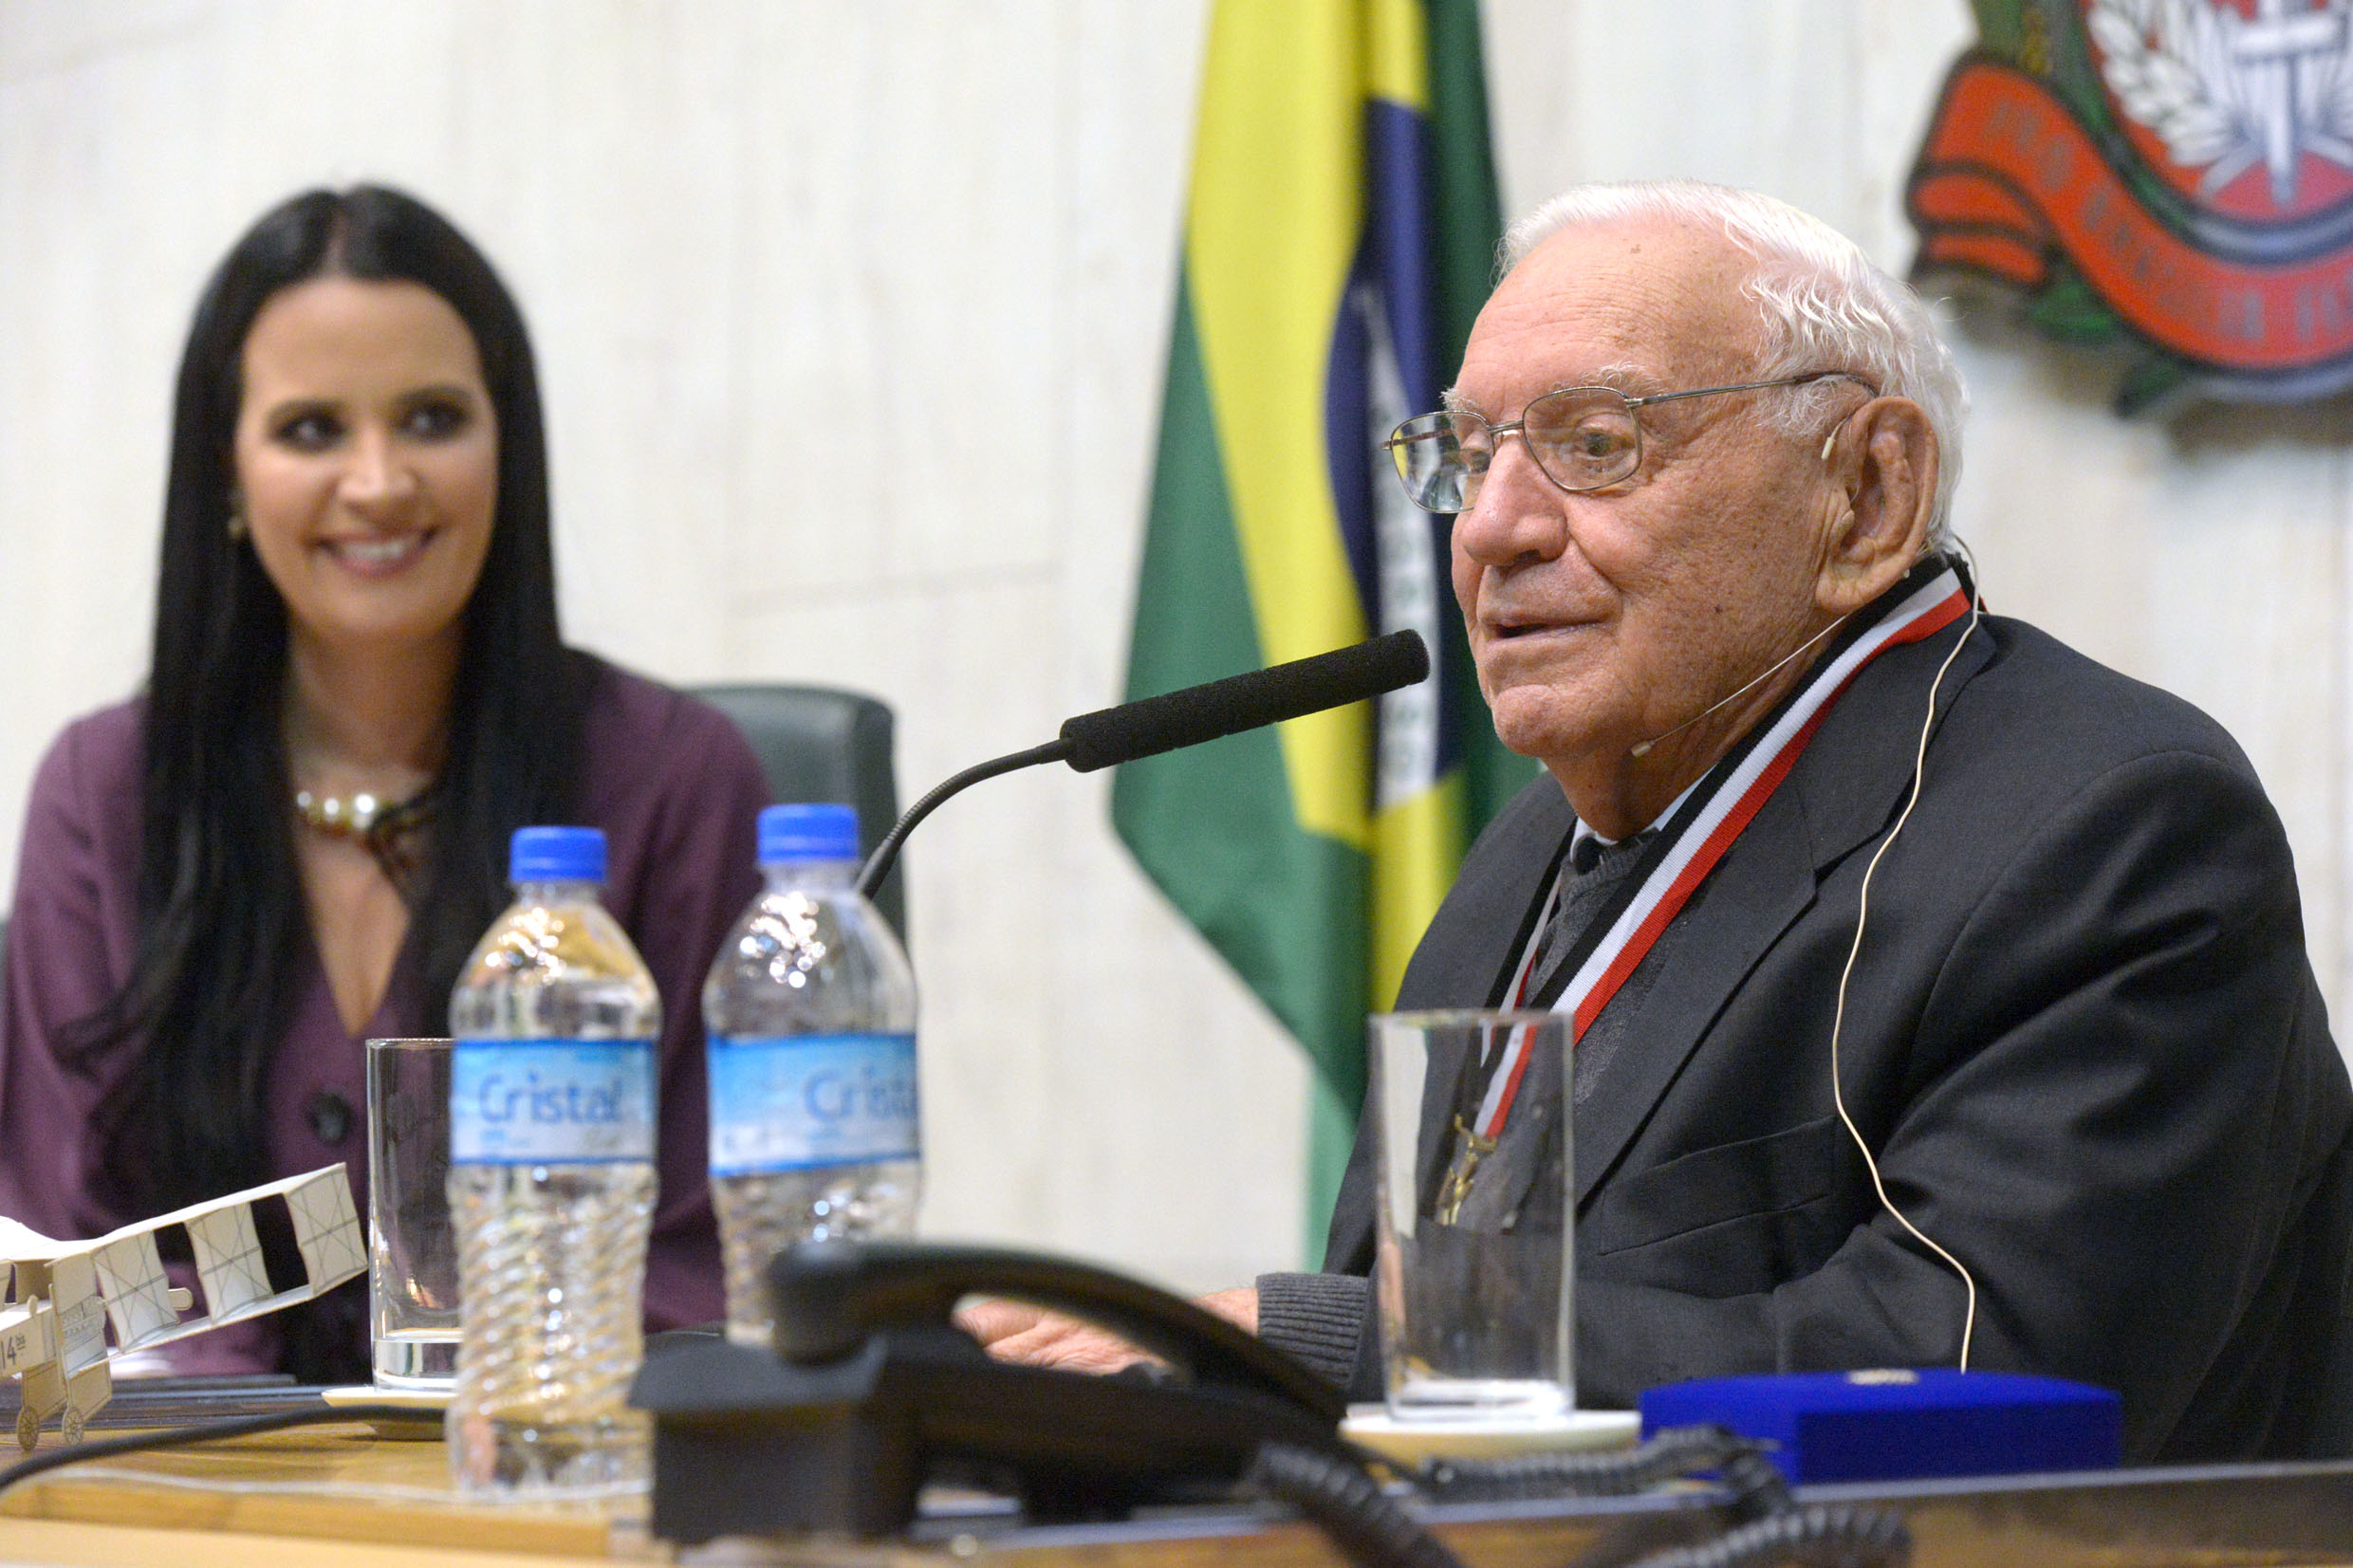 Leticia Aguiar e Ozires Silva<a style='float:right' href='https://www3.al.sp.gov.br/repositorio/noticia/N-08-2019/fg238351.jpg' target=_blank><img src='/_img/material-file-download-white.png' width='14px' alt='Clique para baixar a imagem'></a>